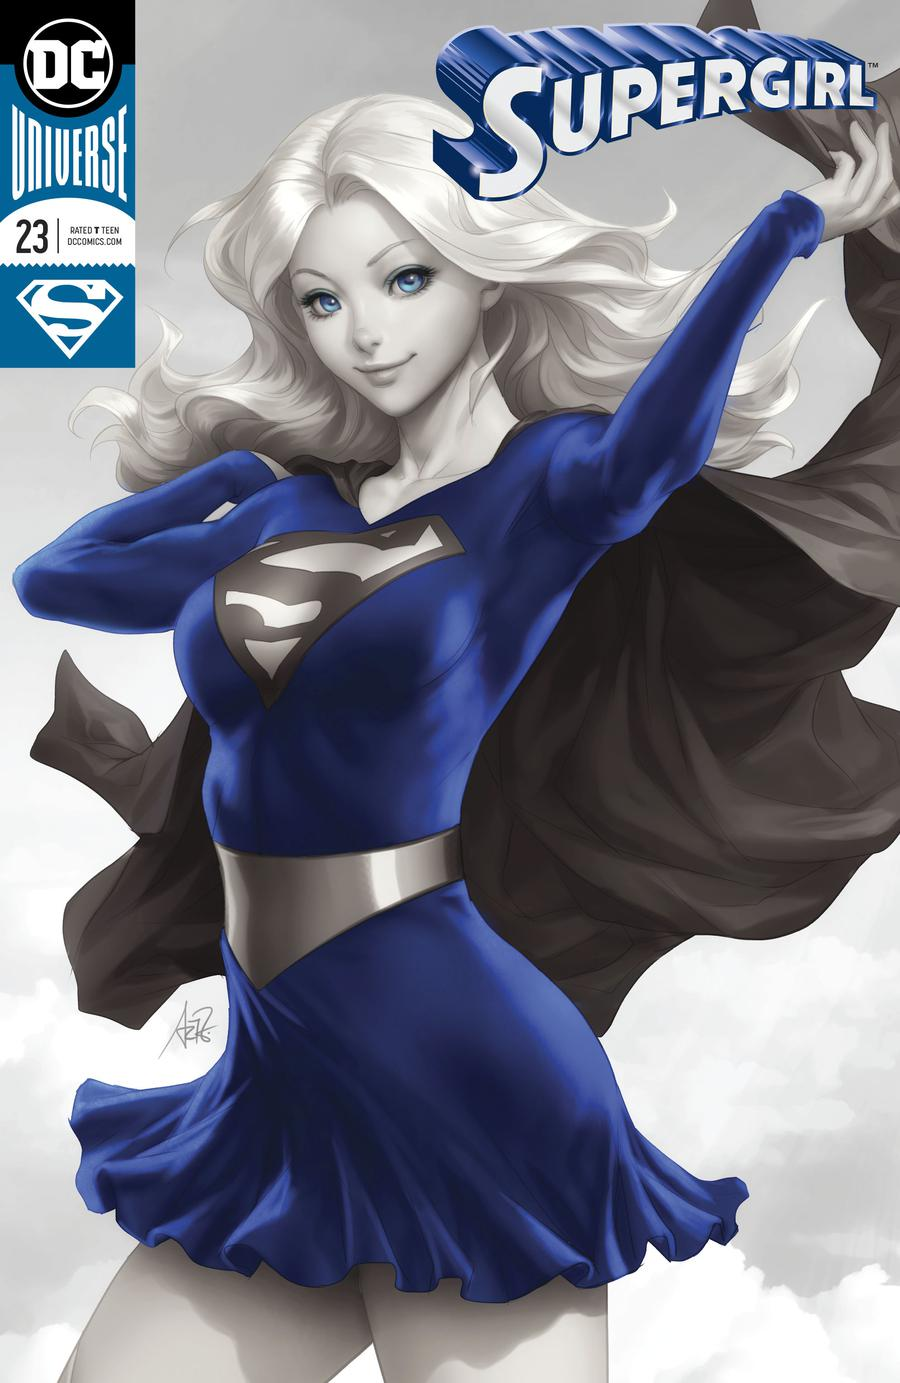 Supergirl Vol 7 #23 Cover A Regular Stanley Artgerm Lau Enhanced Foil Cover